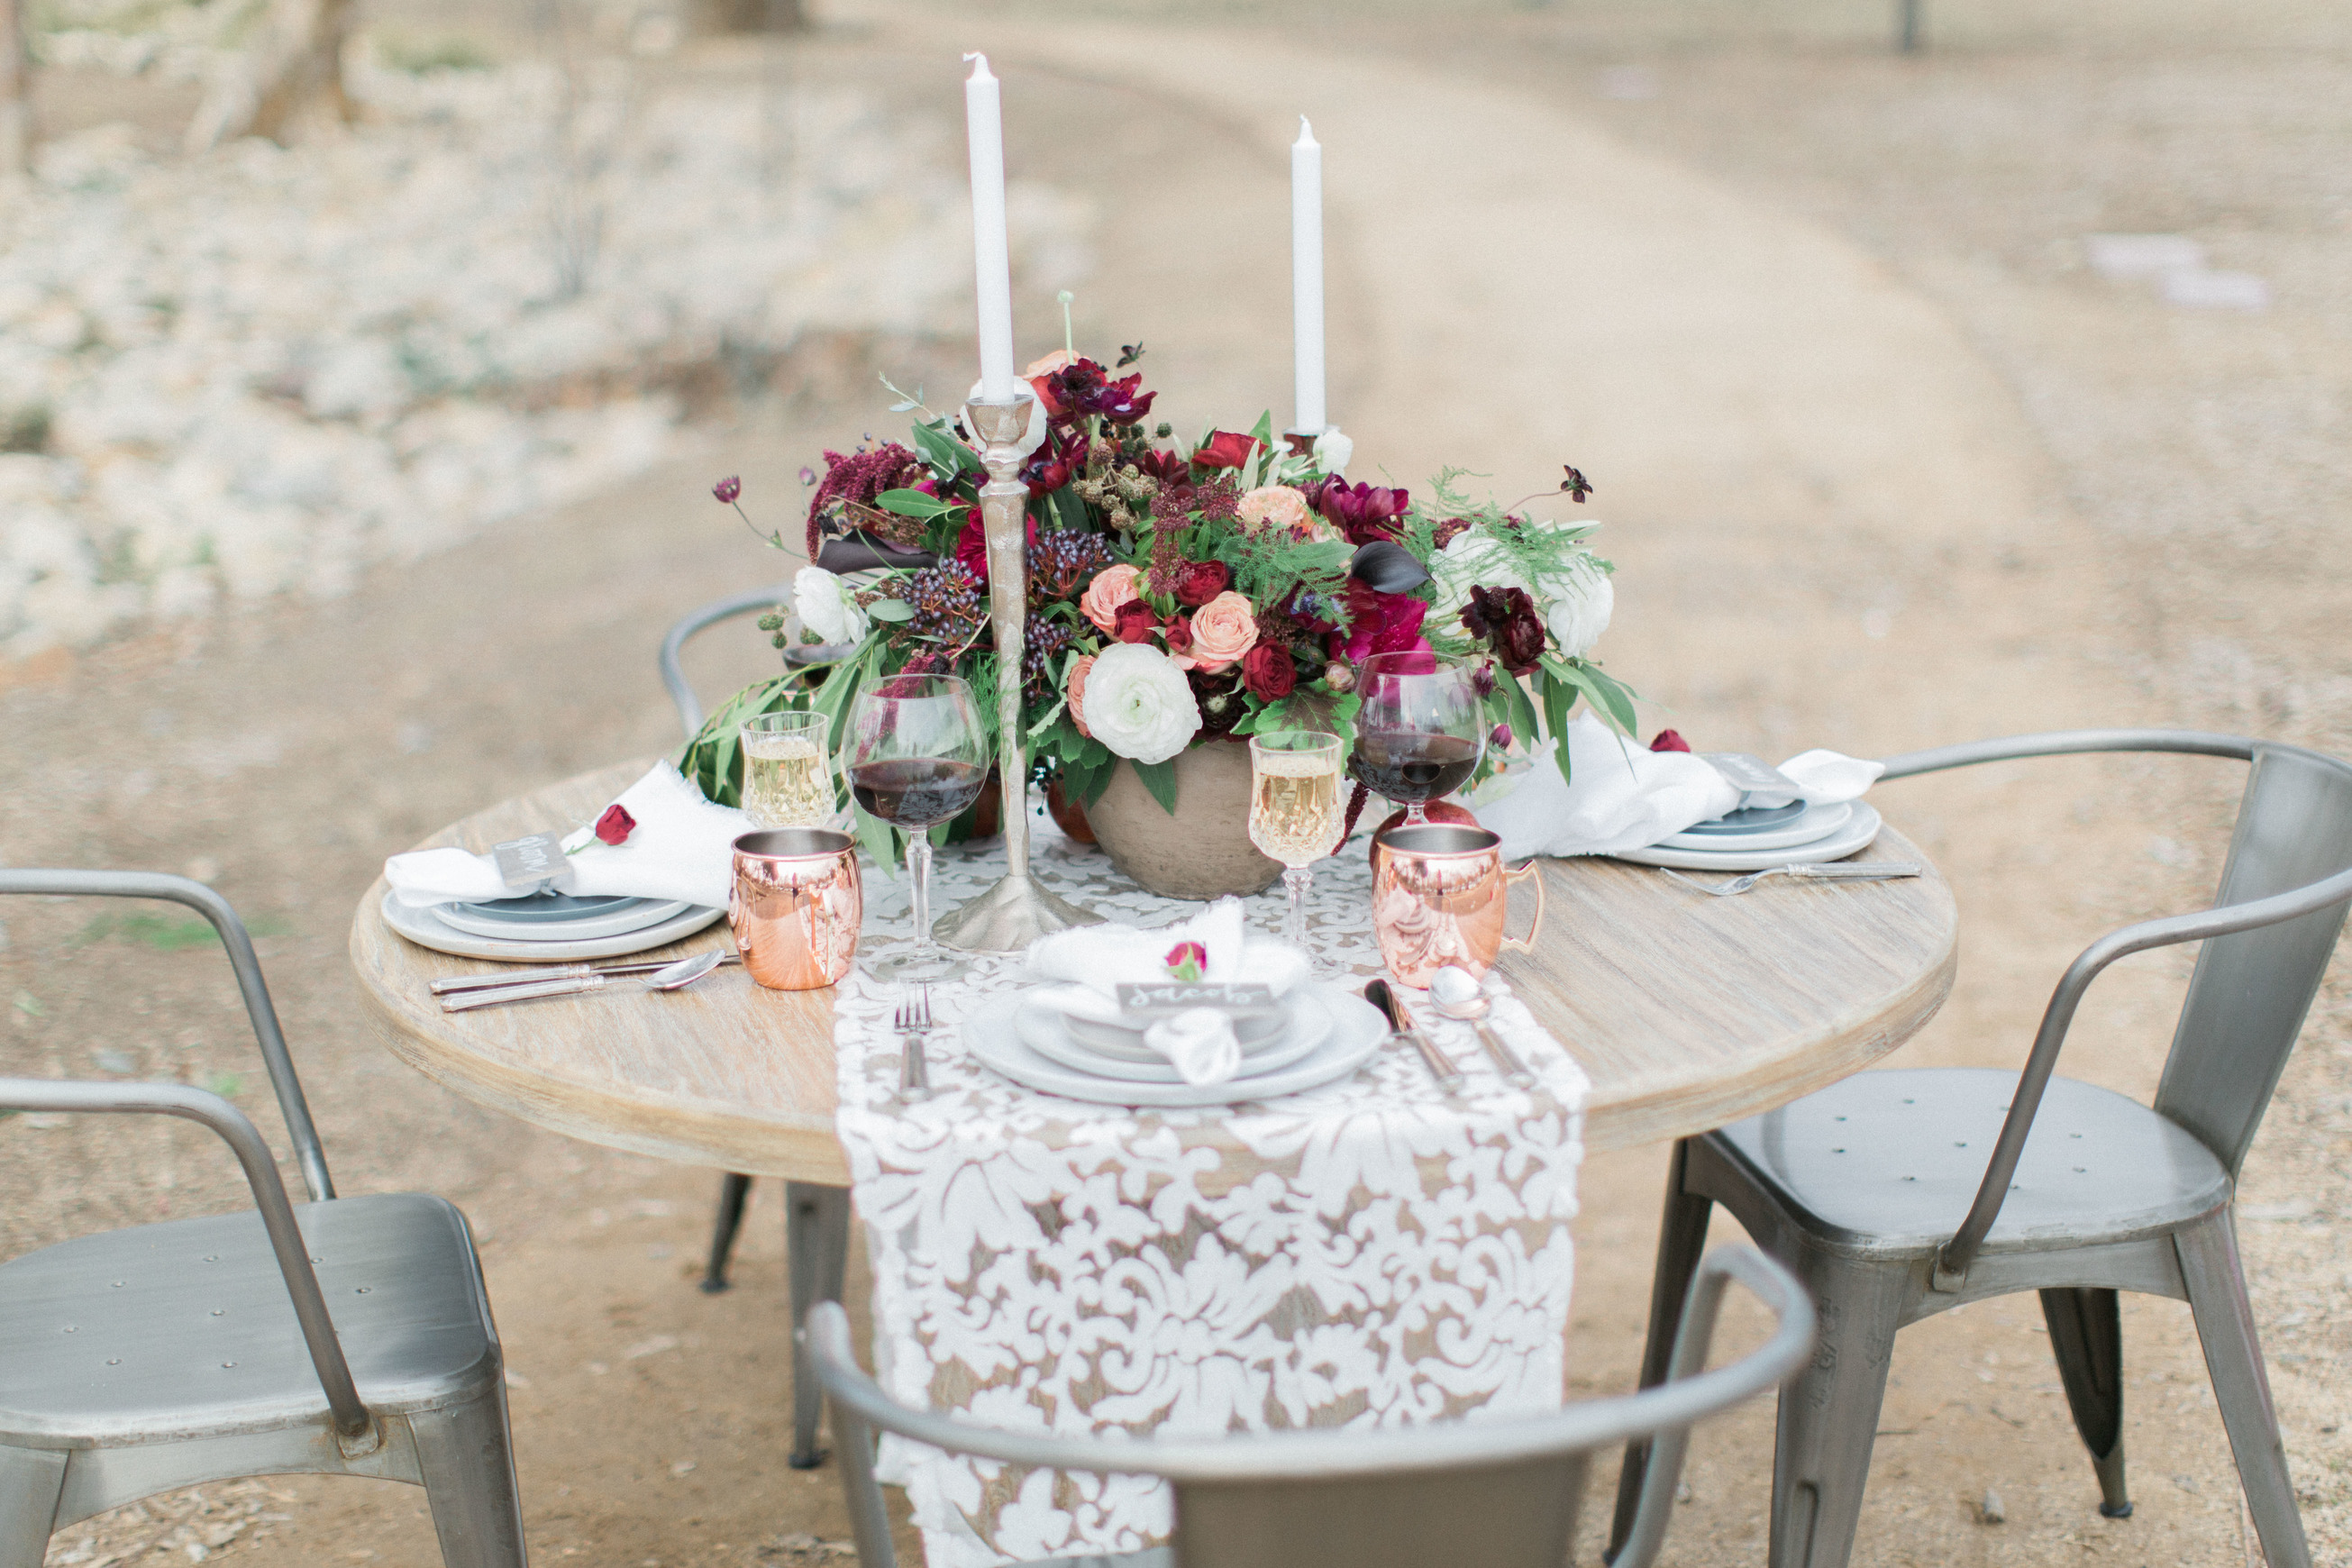 Burgundy and merlot wedding table setting